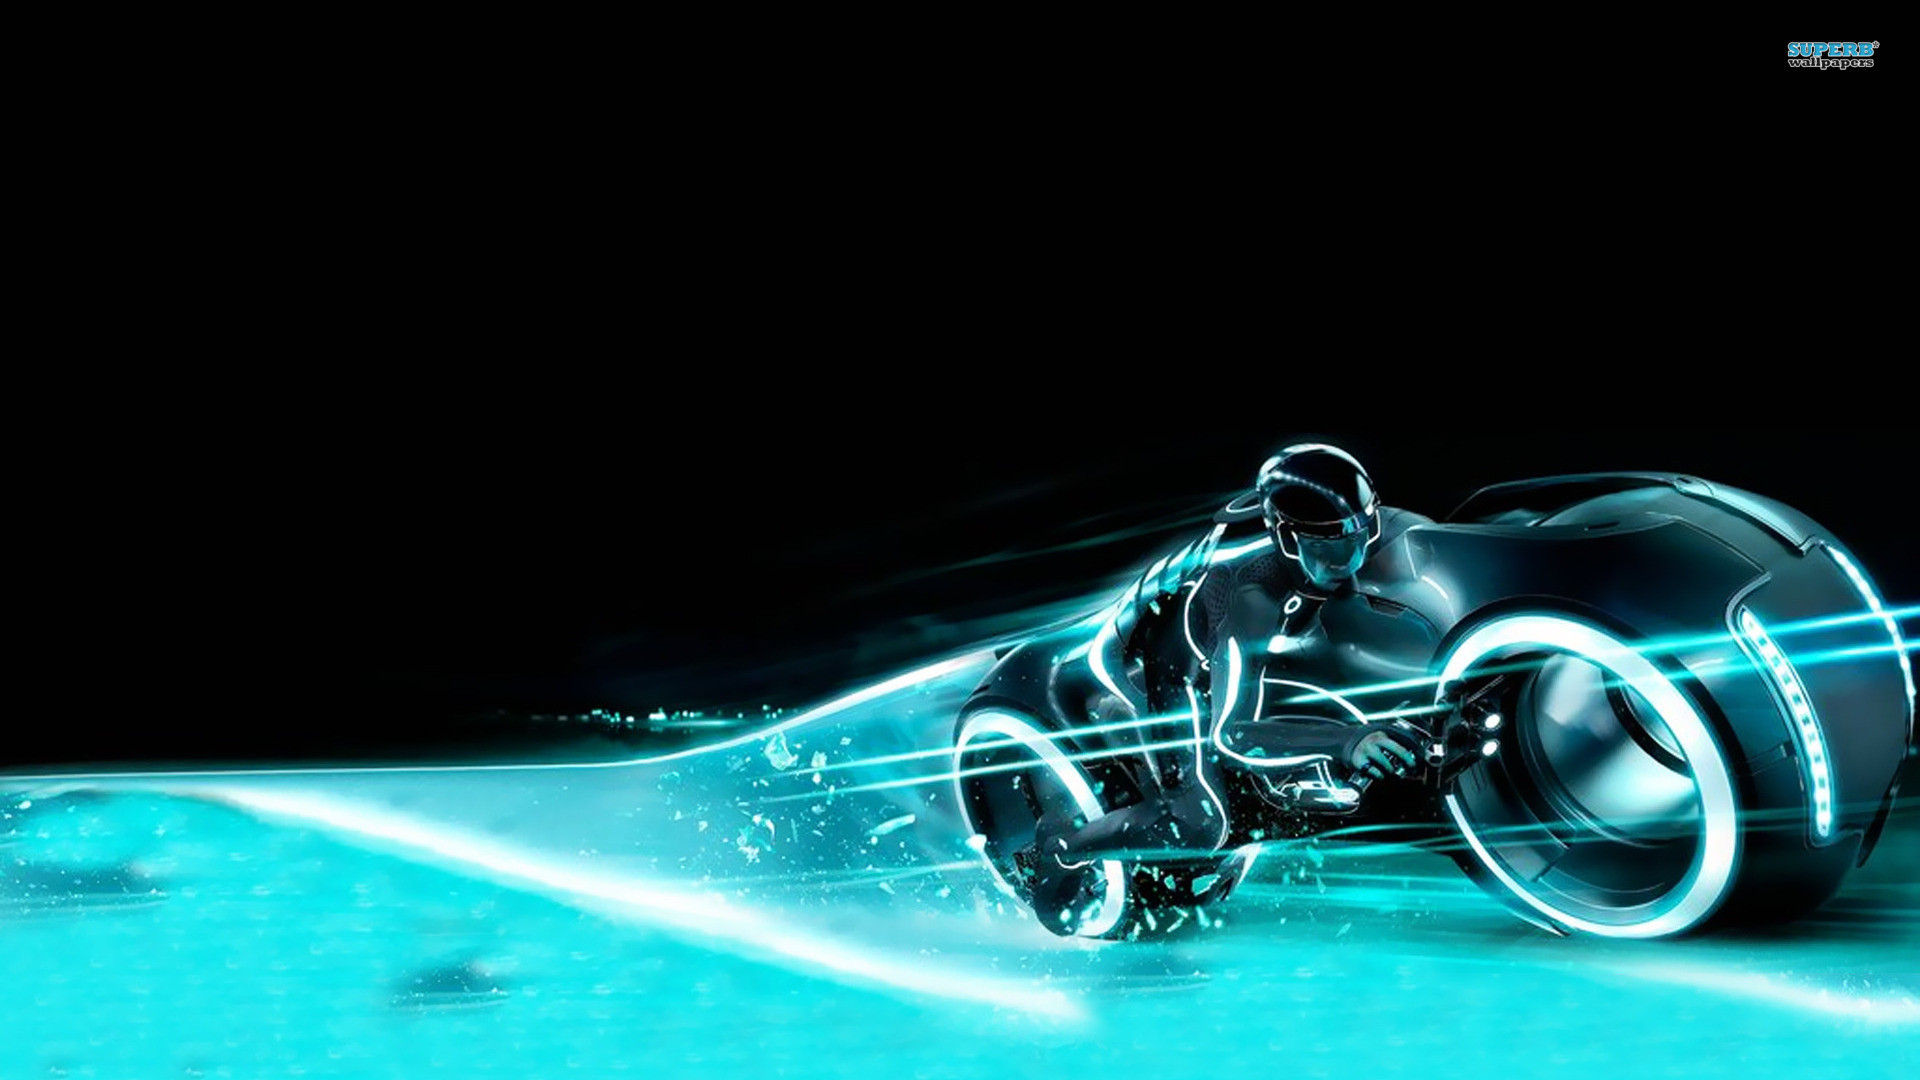 Wallpaper 3d Bike Tron Legacy Download: Tron HD Wallpaper ·① WallpaperTag